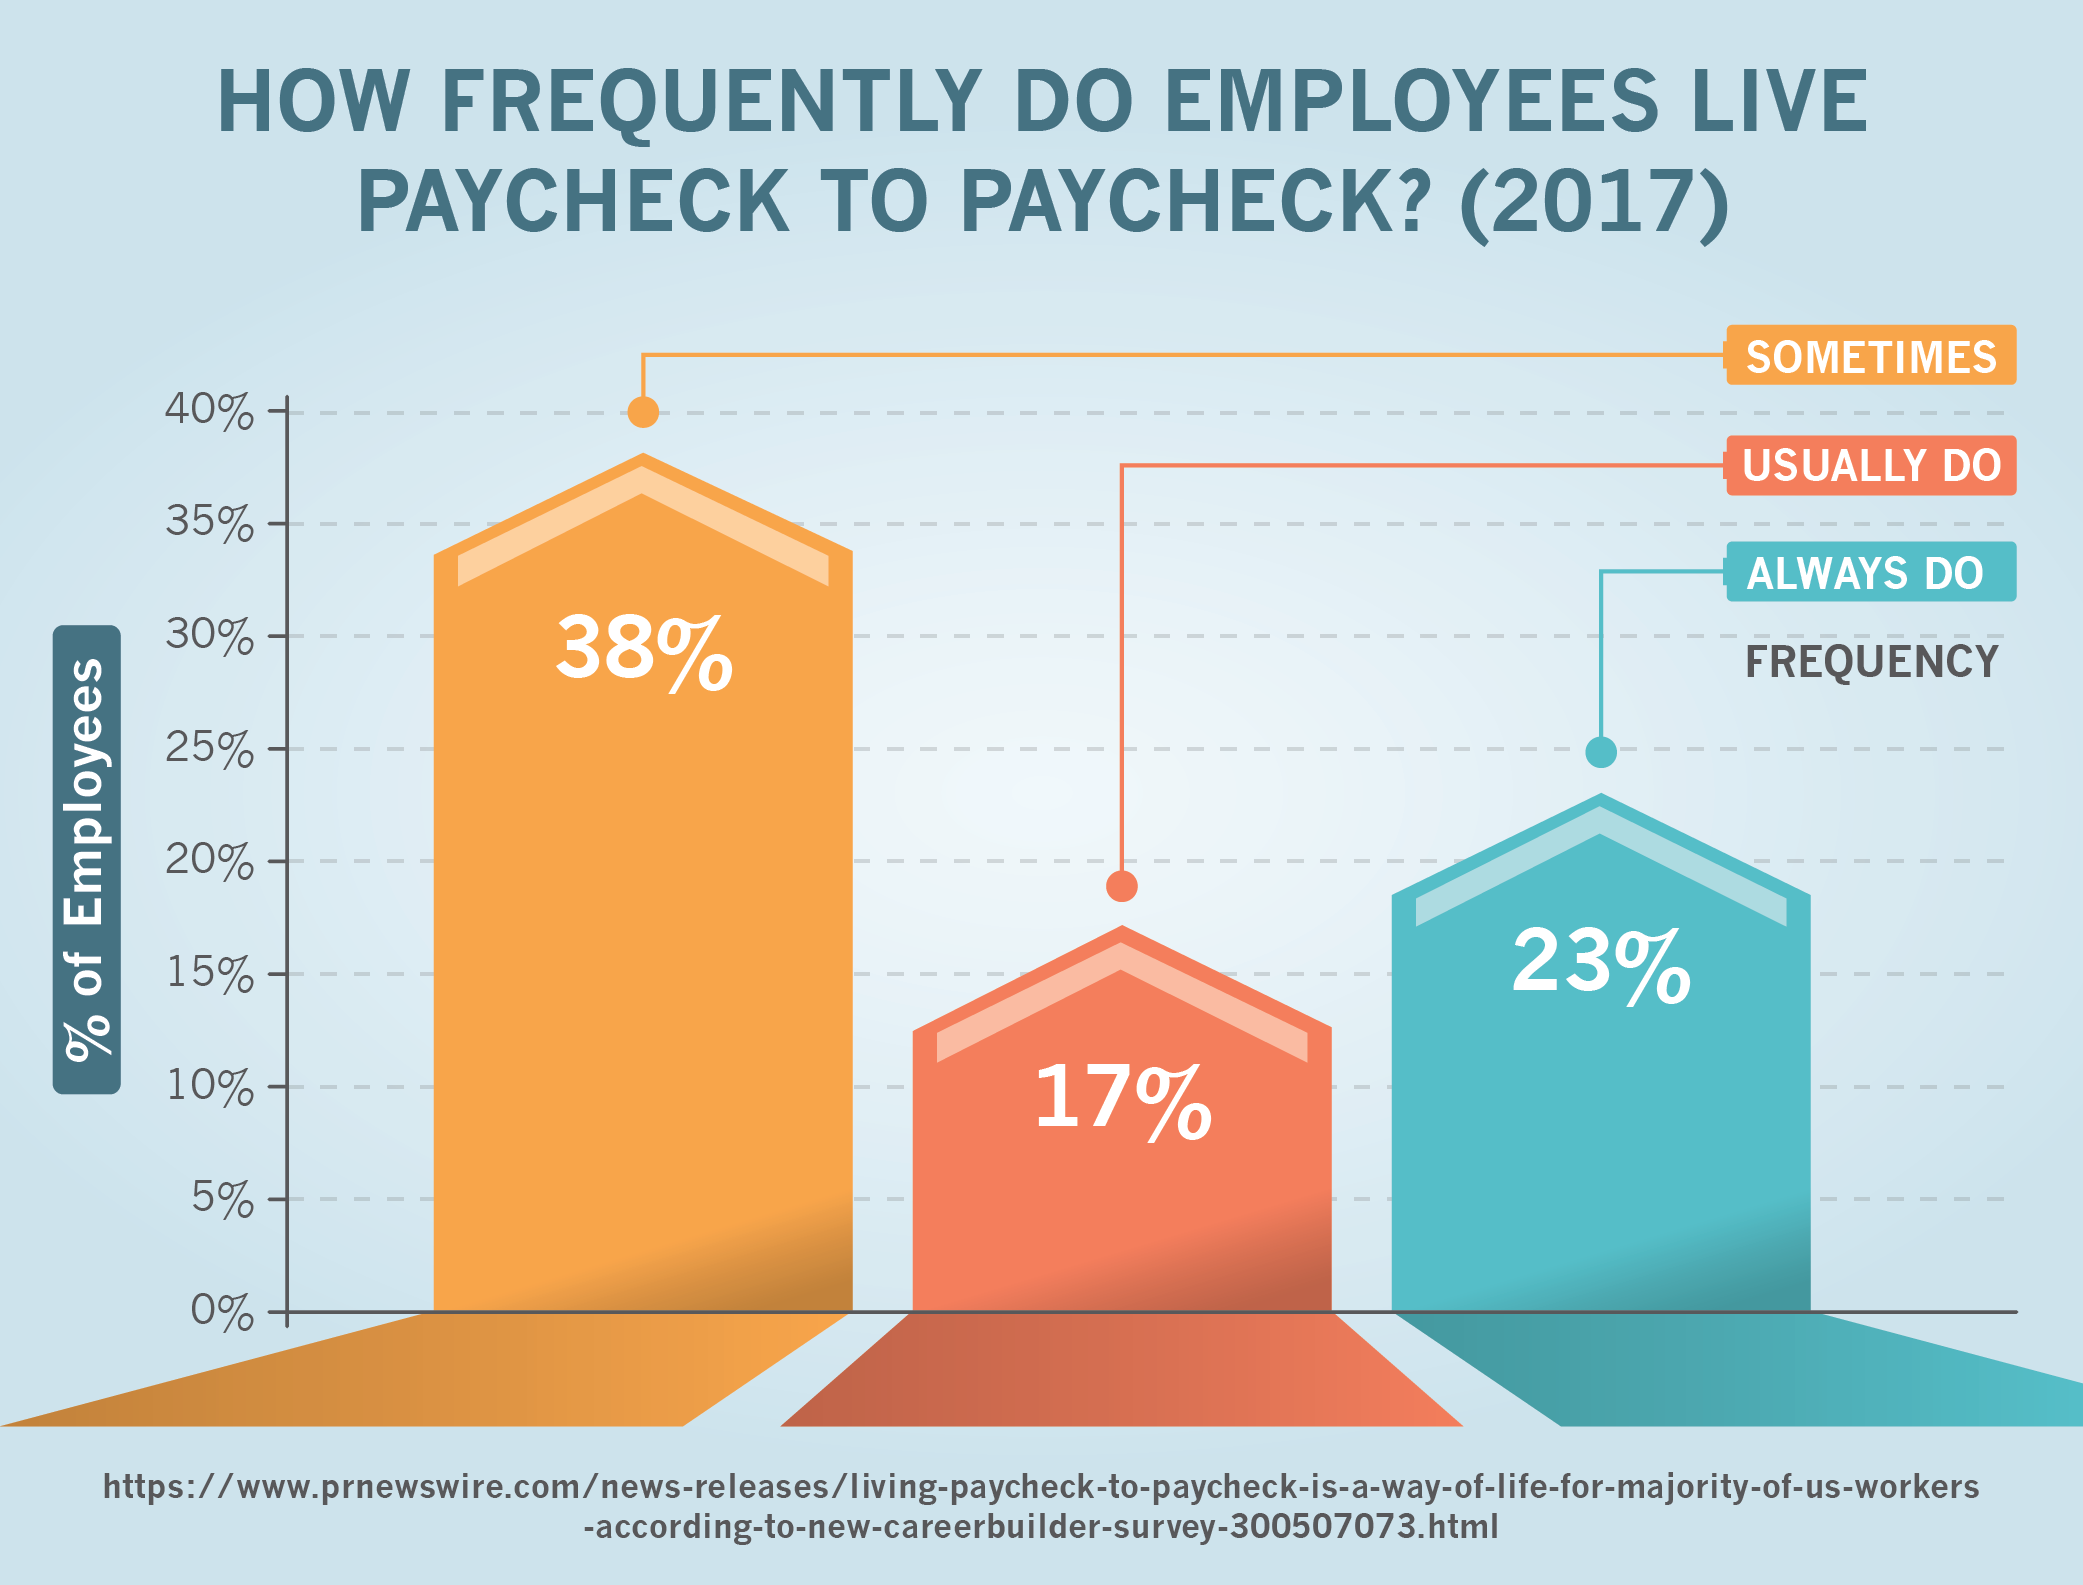 How Frequently Do Employees Live Paycheck to Paycheck? (2017)